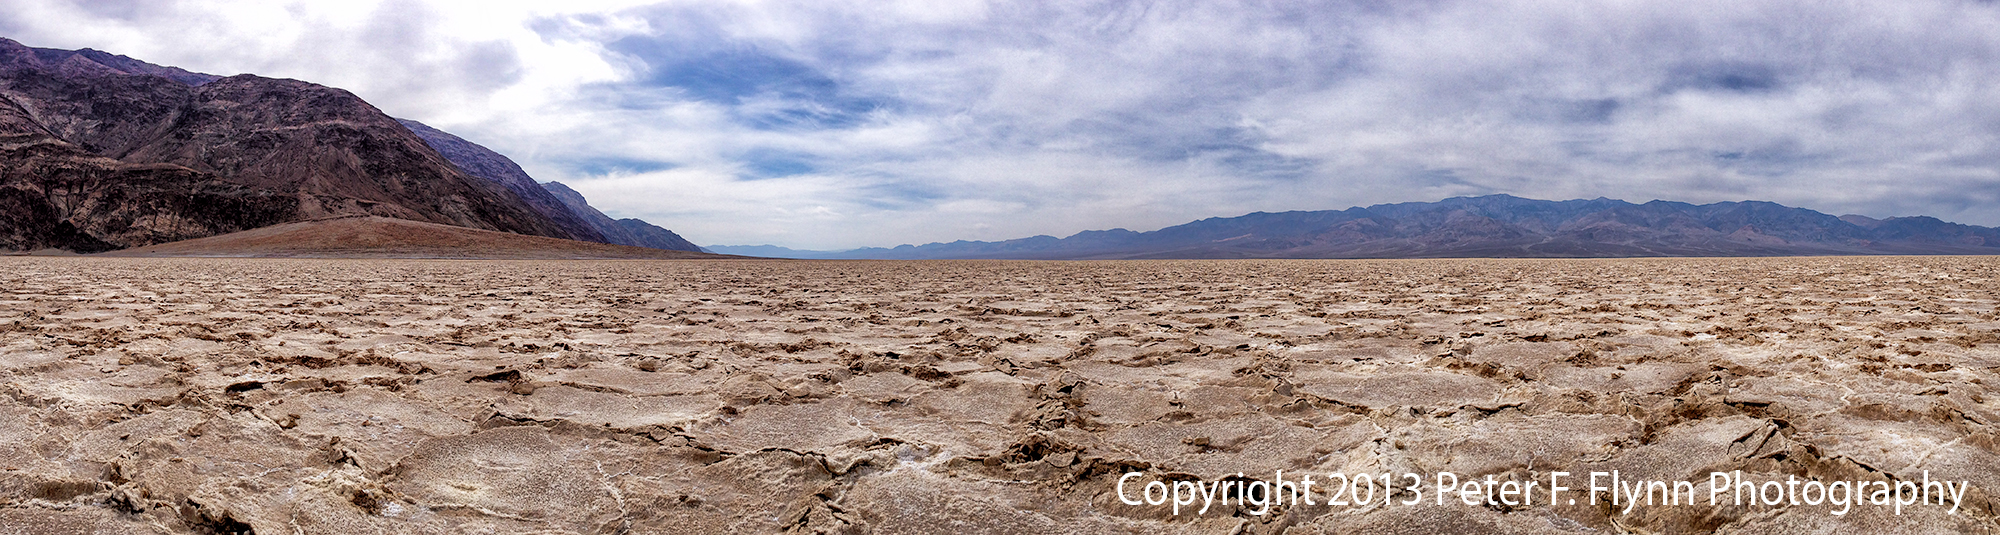 Badwater Salt Flats, Death Valley National Park